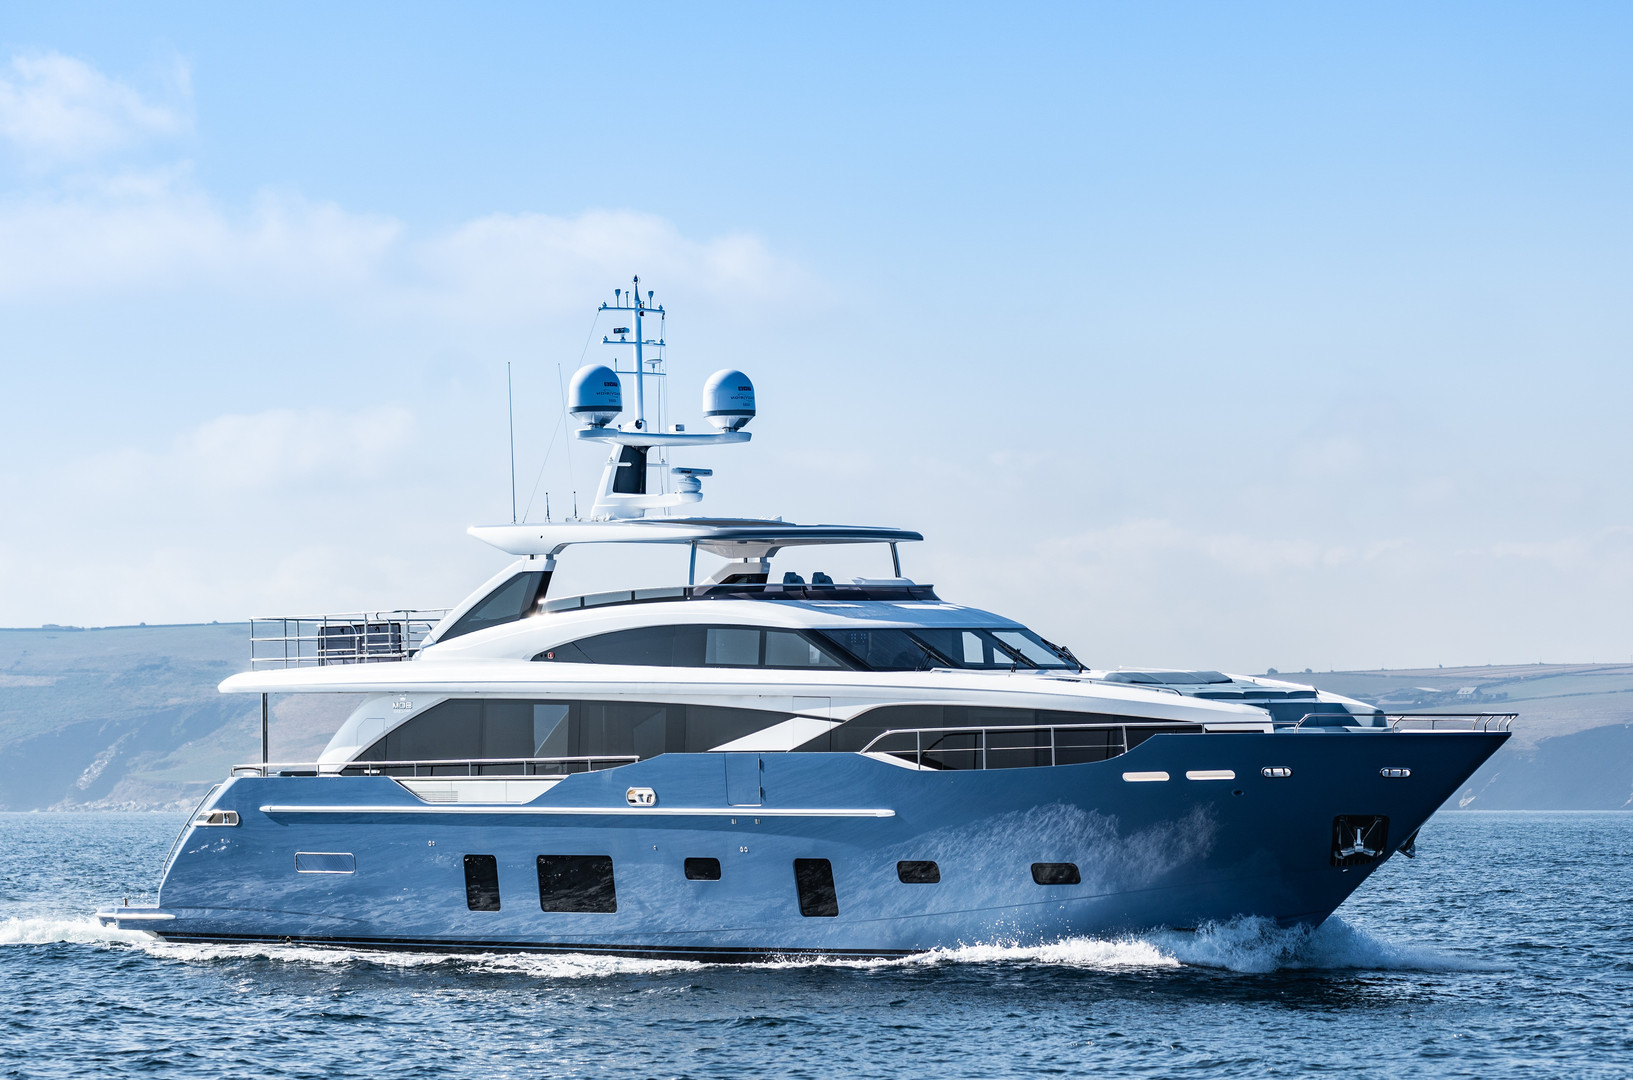 Motor Yacht HALLELUJAH - 30m Princess, cruising on charter